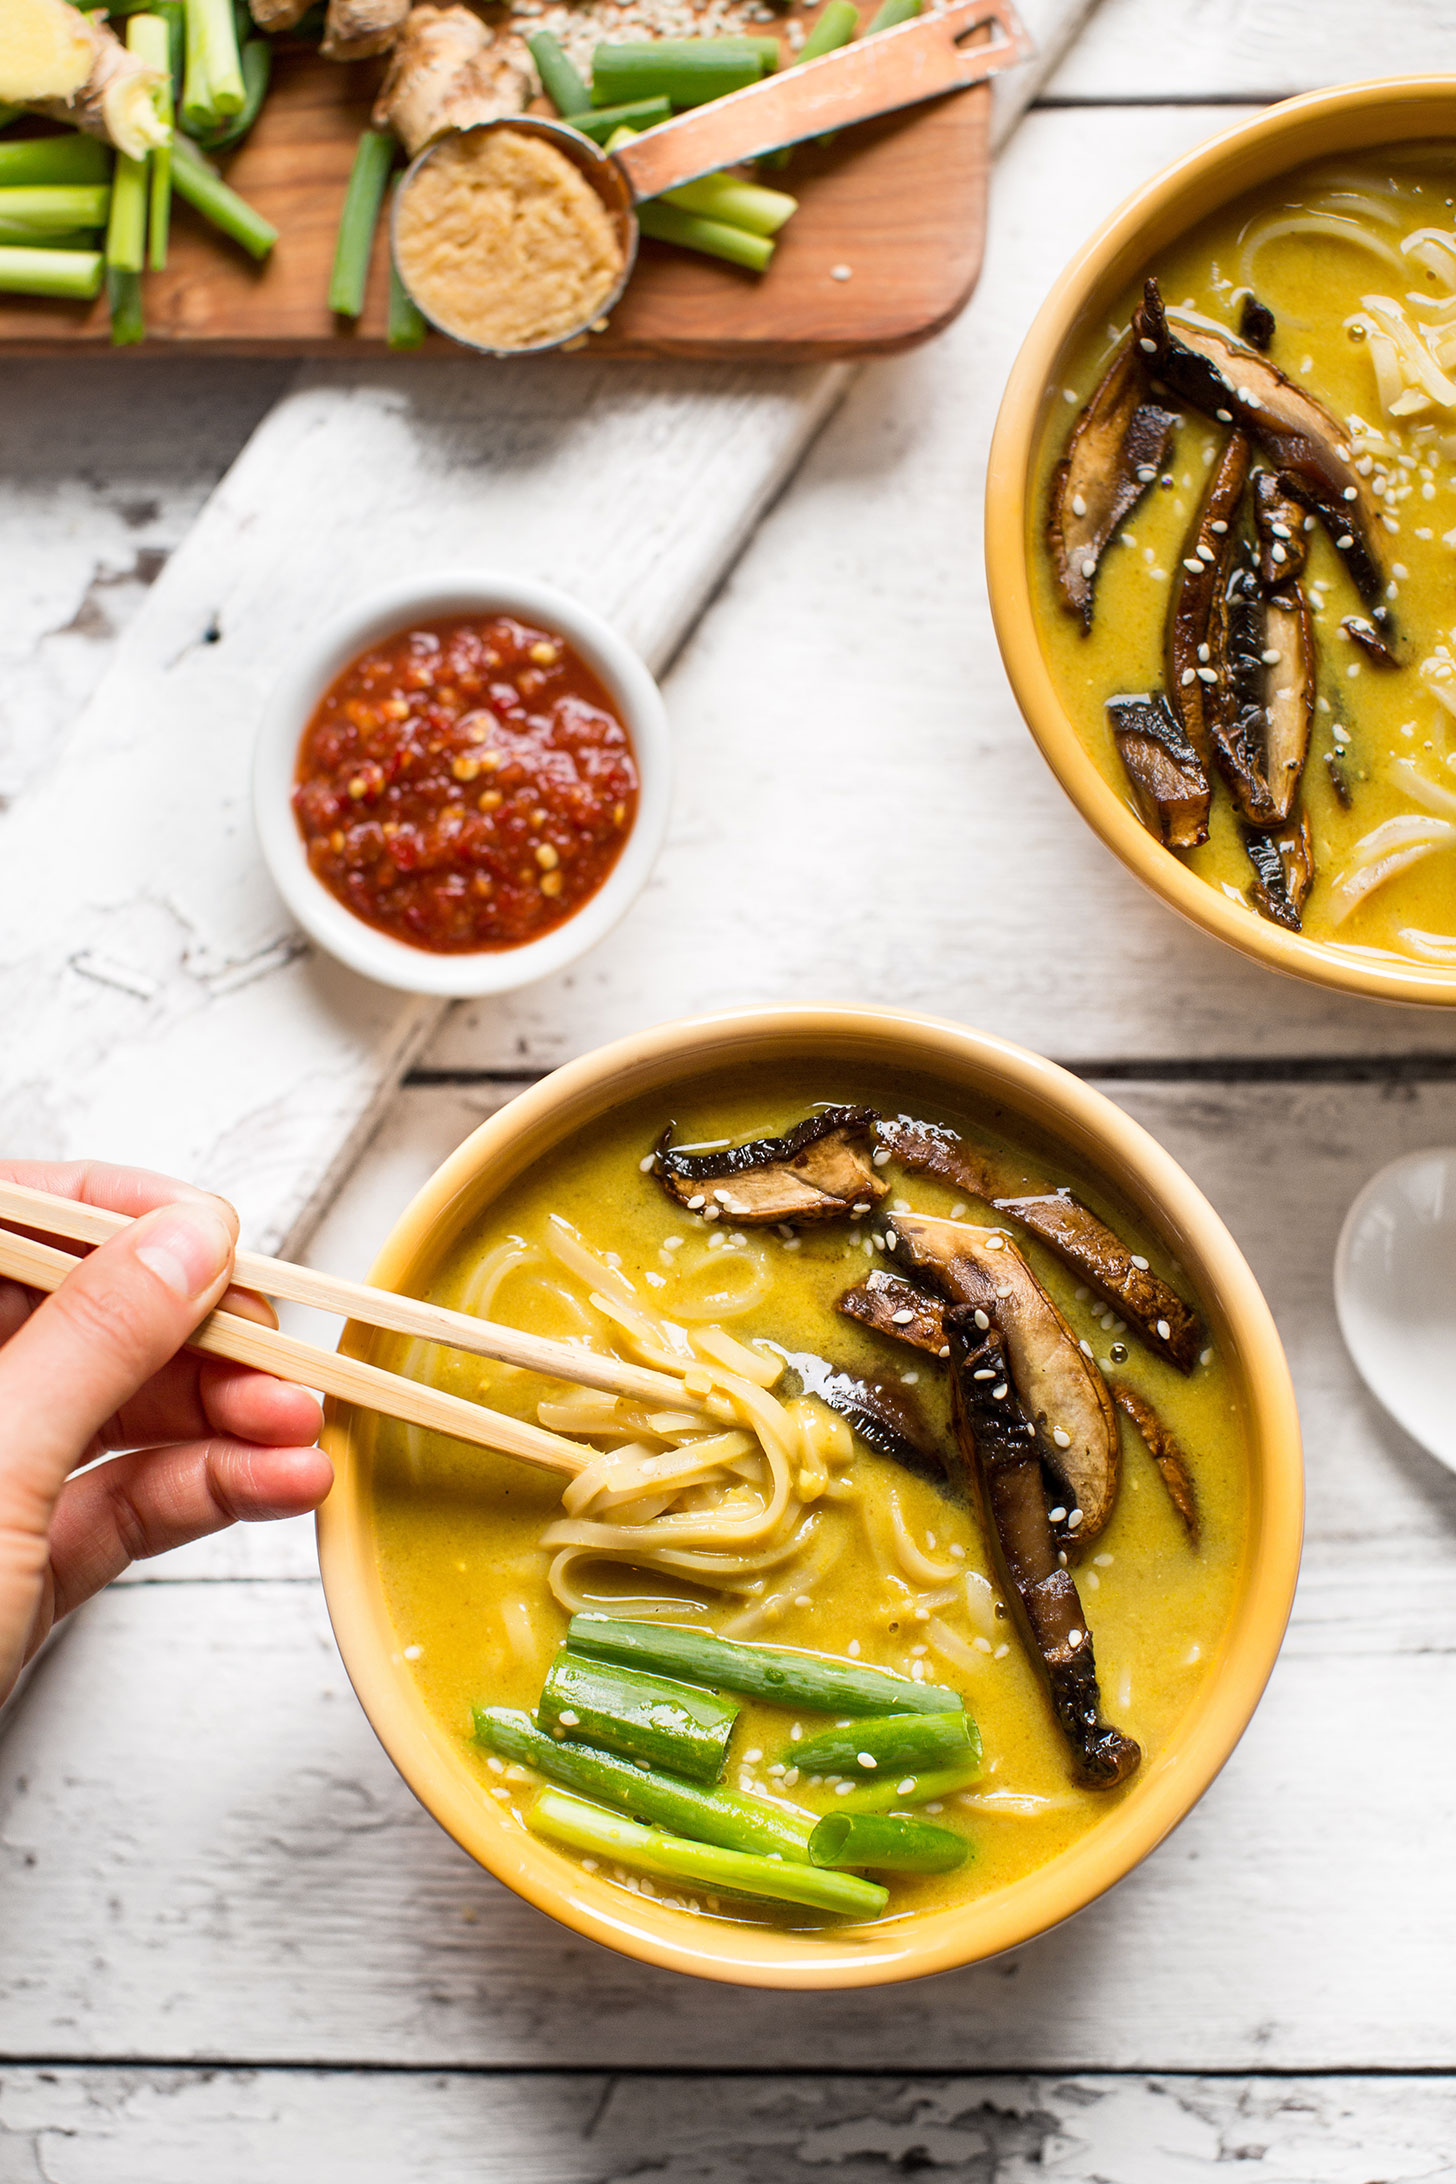 Bowl of our amazing Coconut Curry Ramen recipe